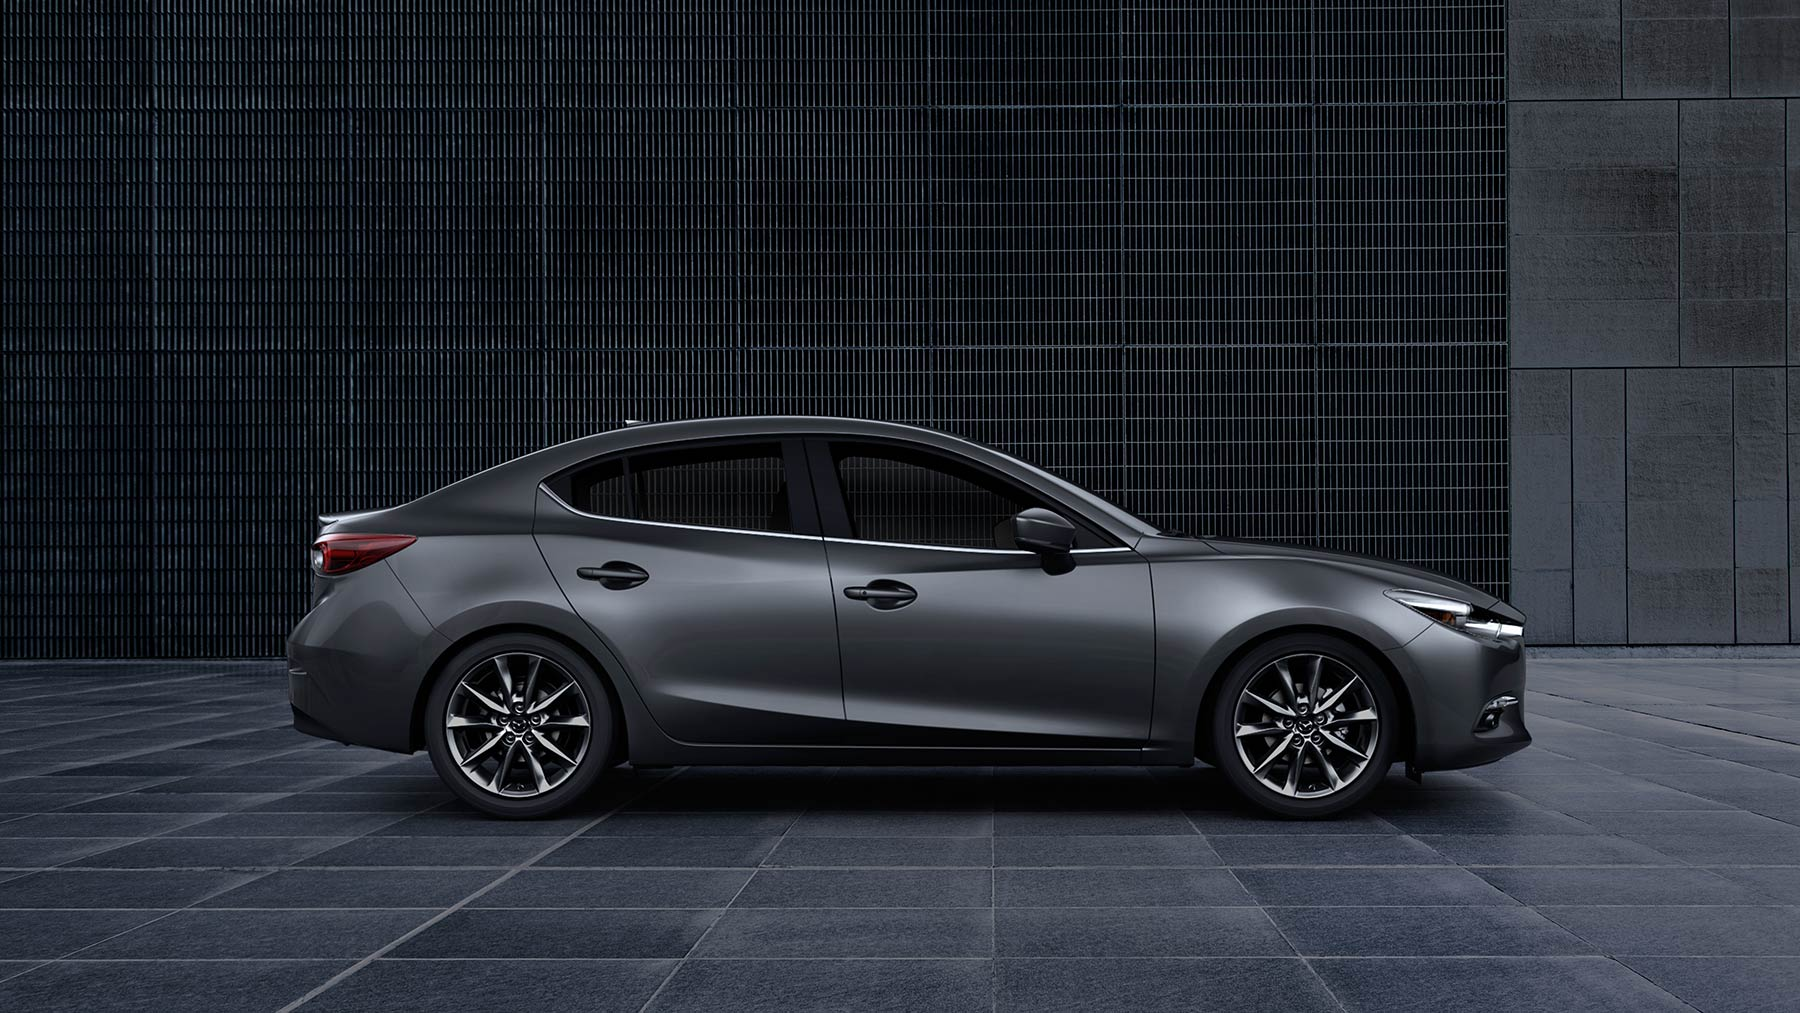 2018 Mazda3 Financing in Elk Grove, CA